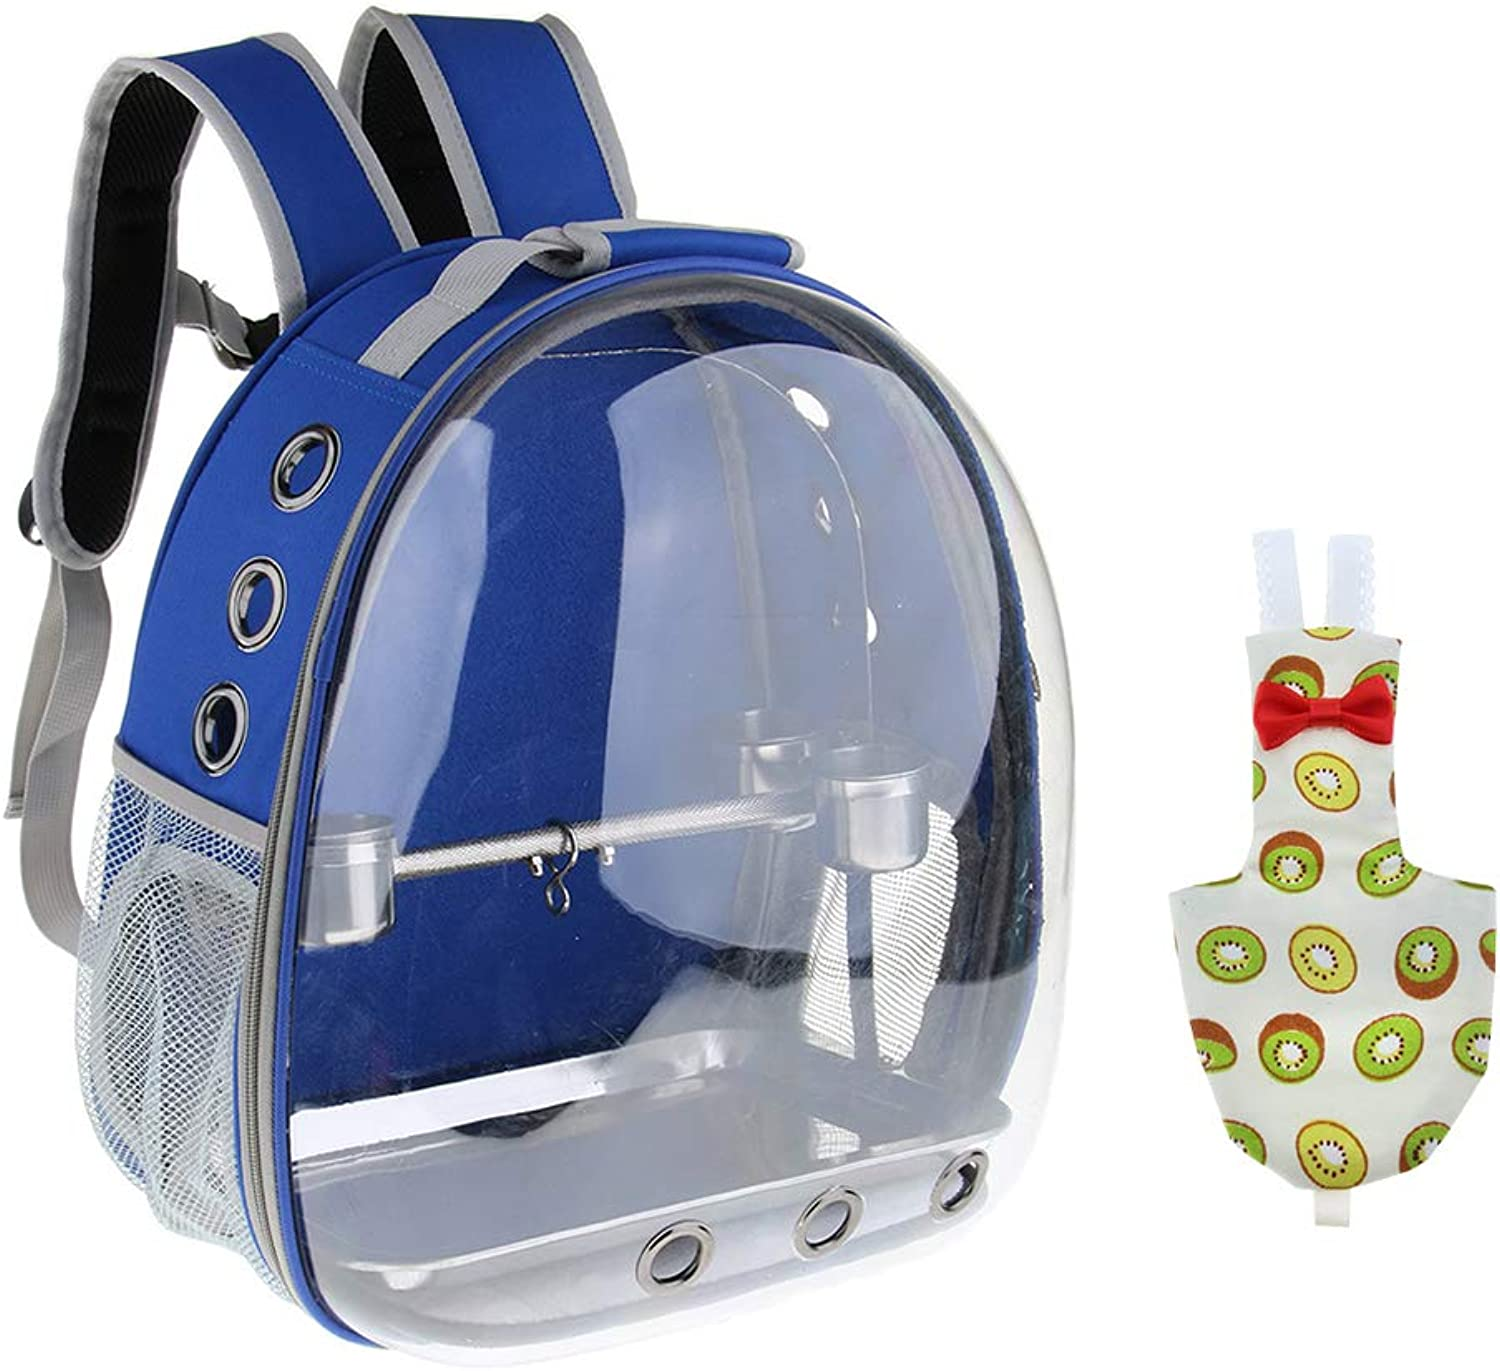 Baoblaze Transparent Pet Breathable Pet Parred Travel Space Capsule Backpack Carrier with Kiwi Pattern Bird Fashion Nappy Diaper (bluee)